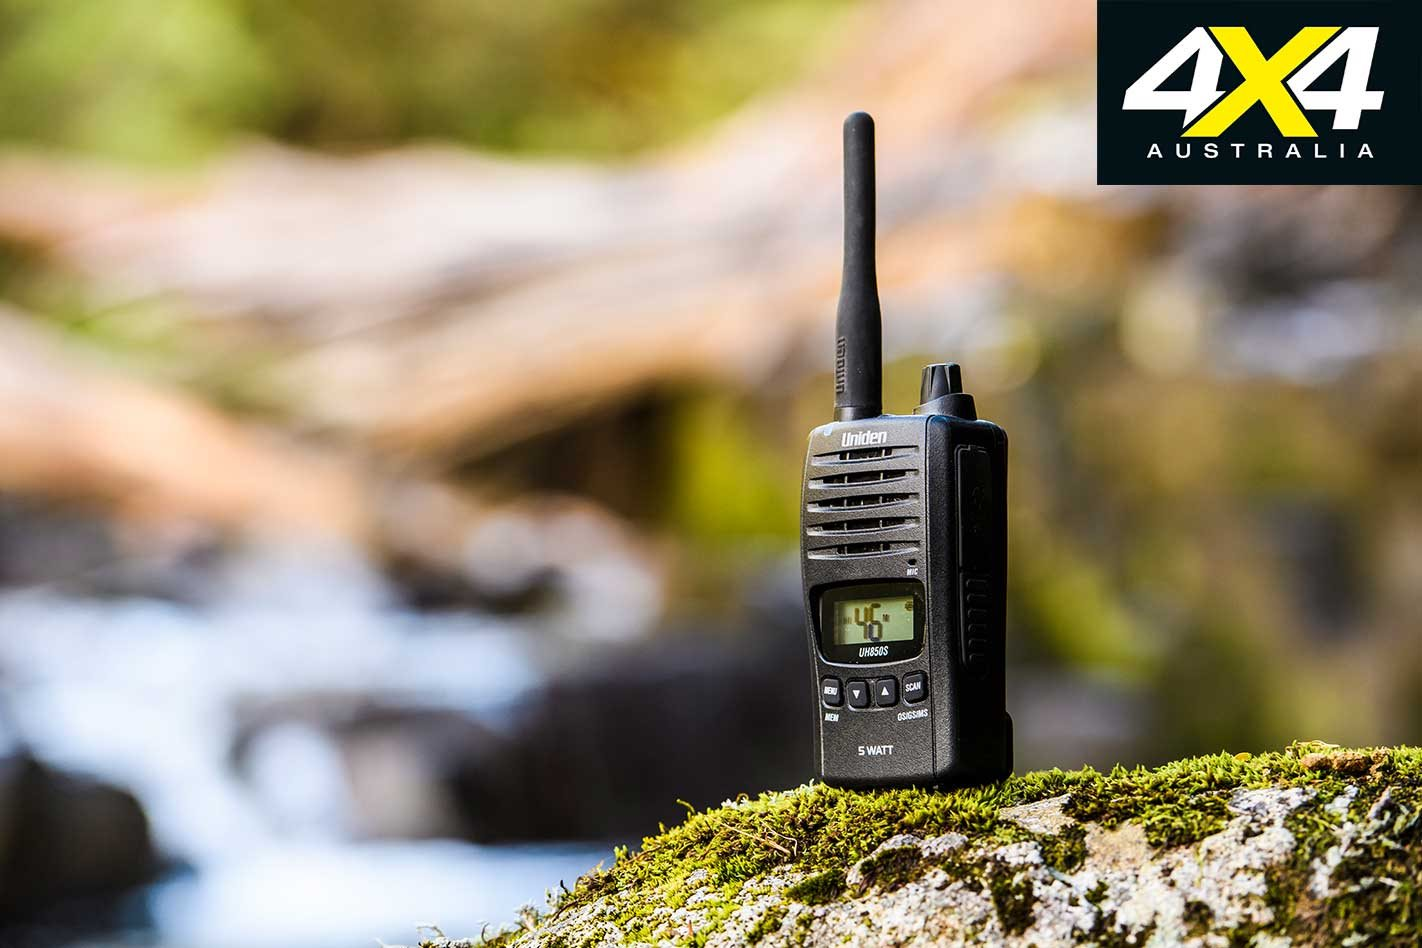 UHF Radios | 4x4 Australia Buyers' Guide